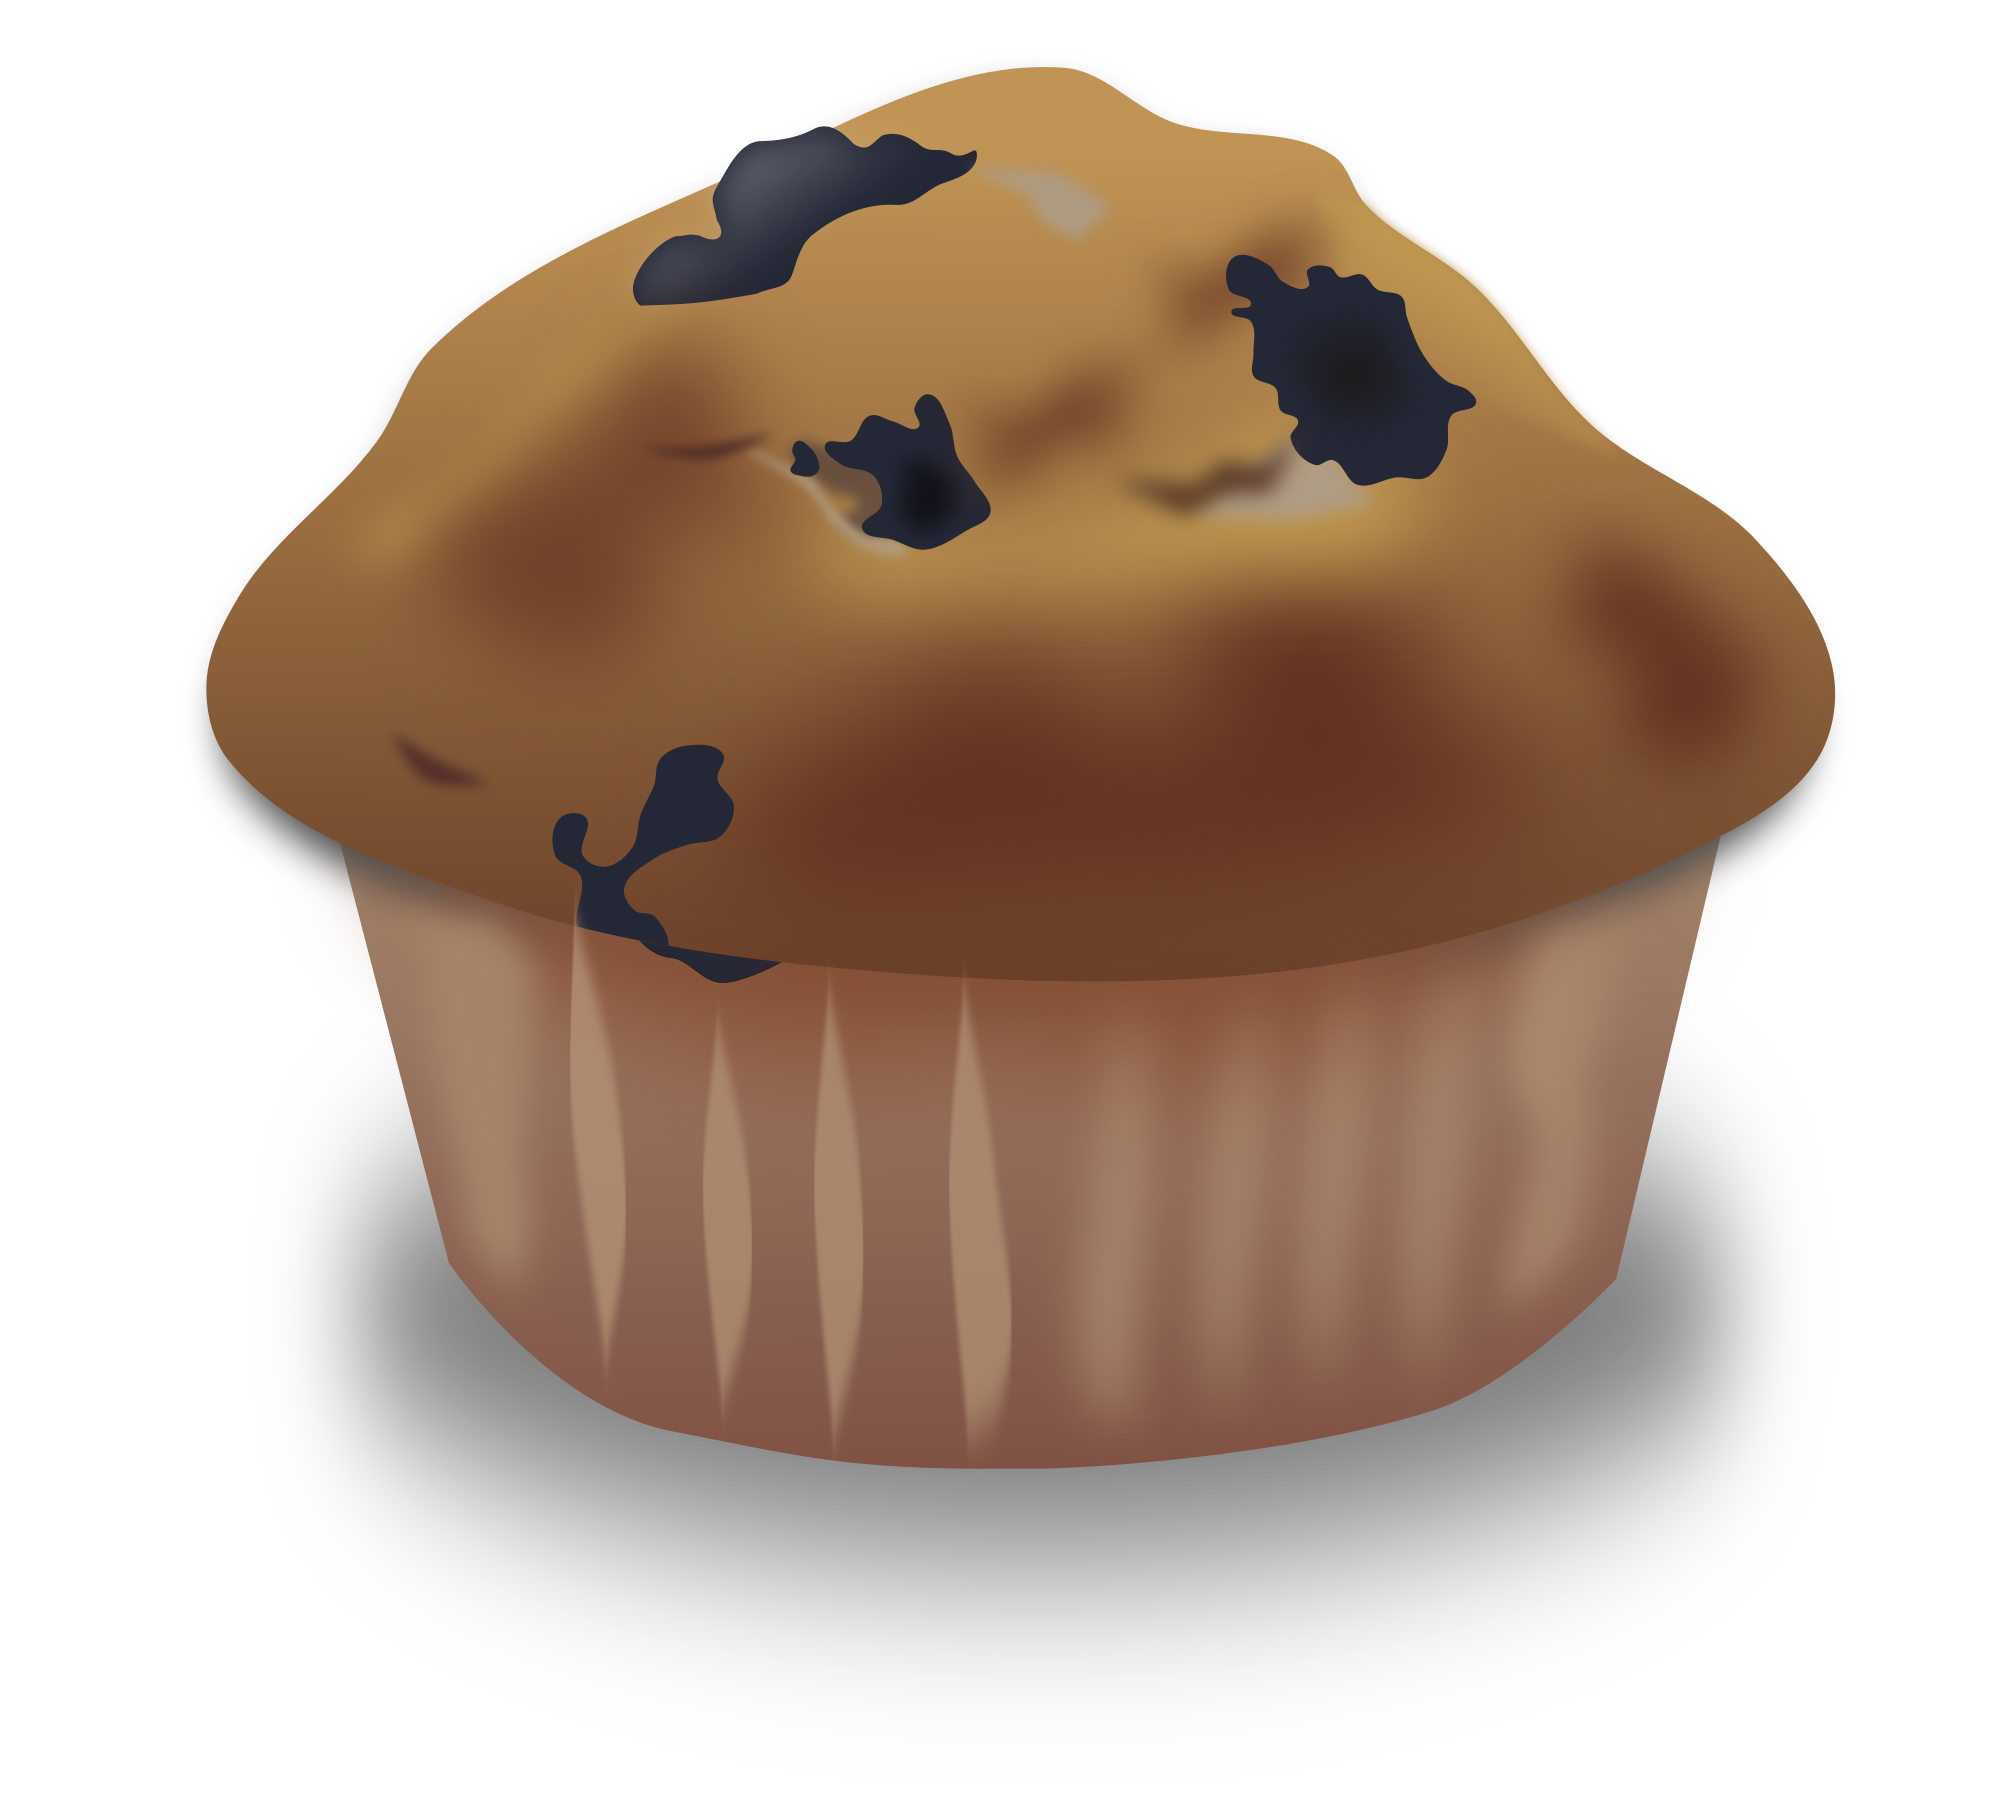 Muffins clipart svg. File muffin wikimedia commons